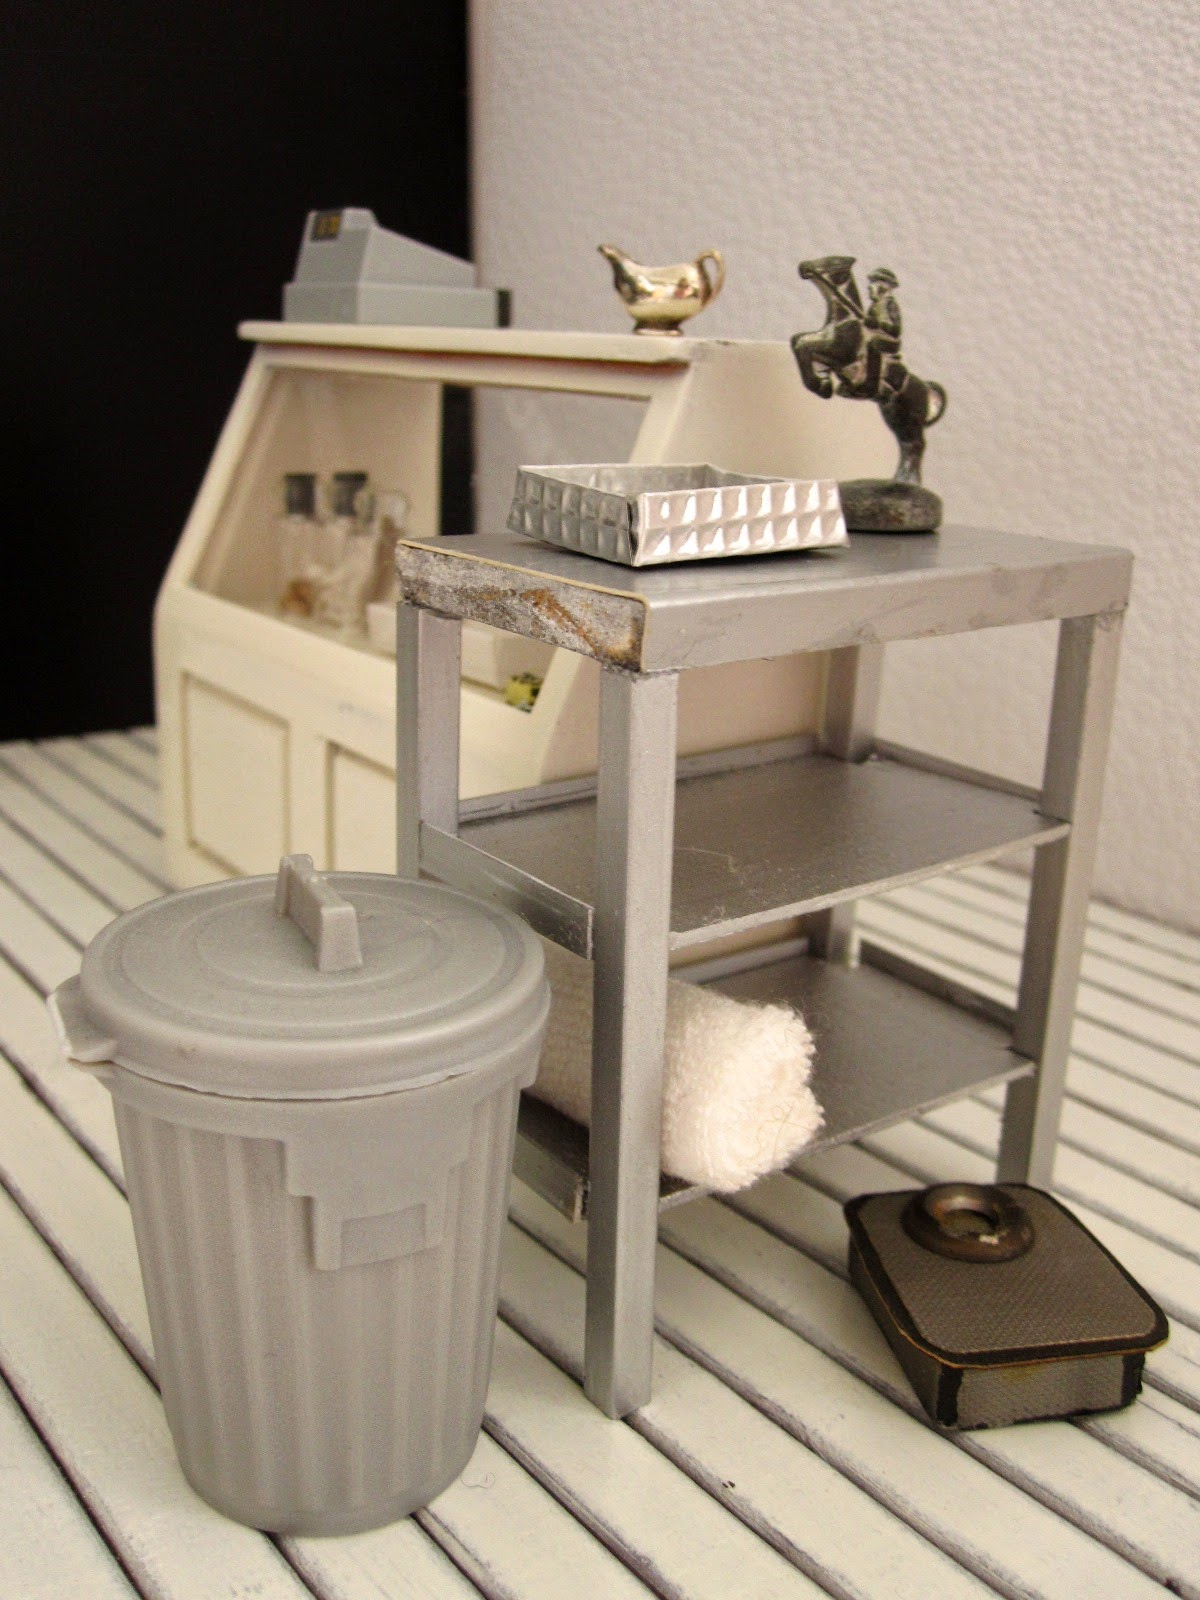 Corner of a modern dolls' house miniature interiors shop, with a range of items in grey, silver and white on display.